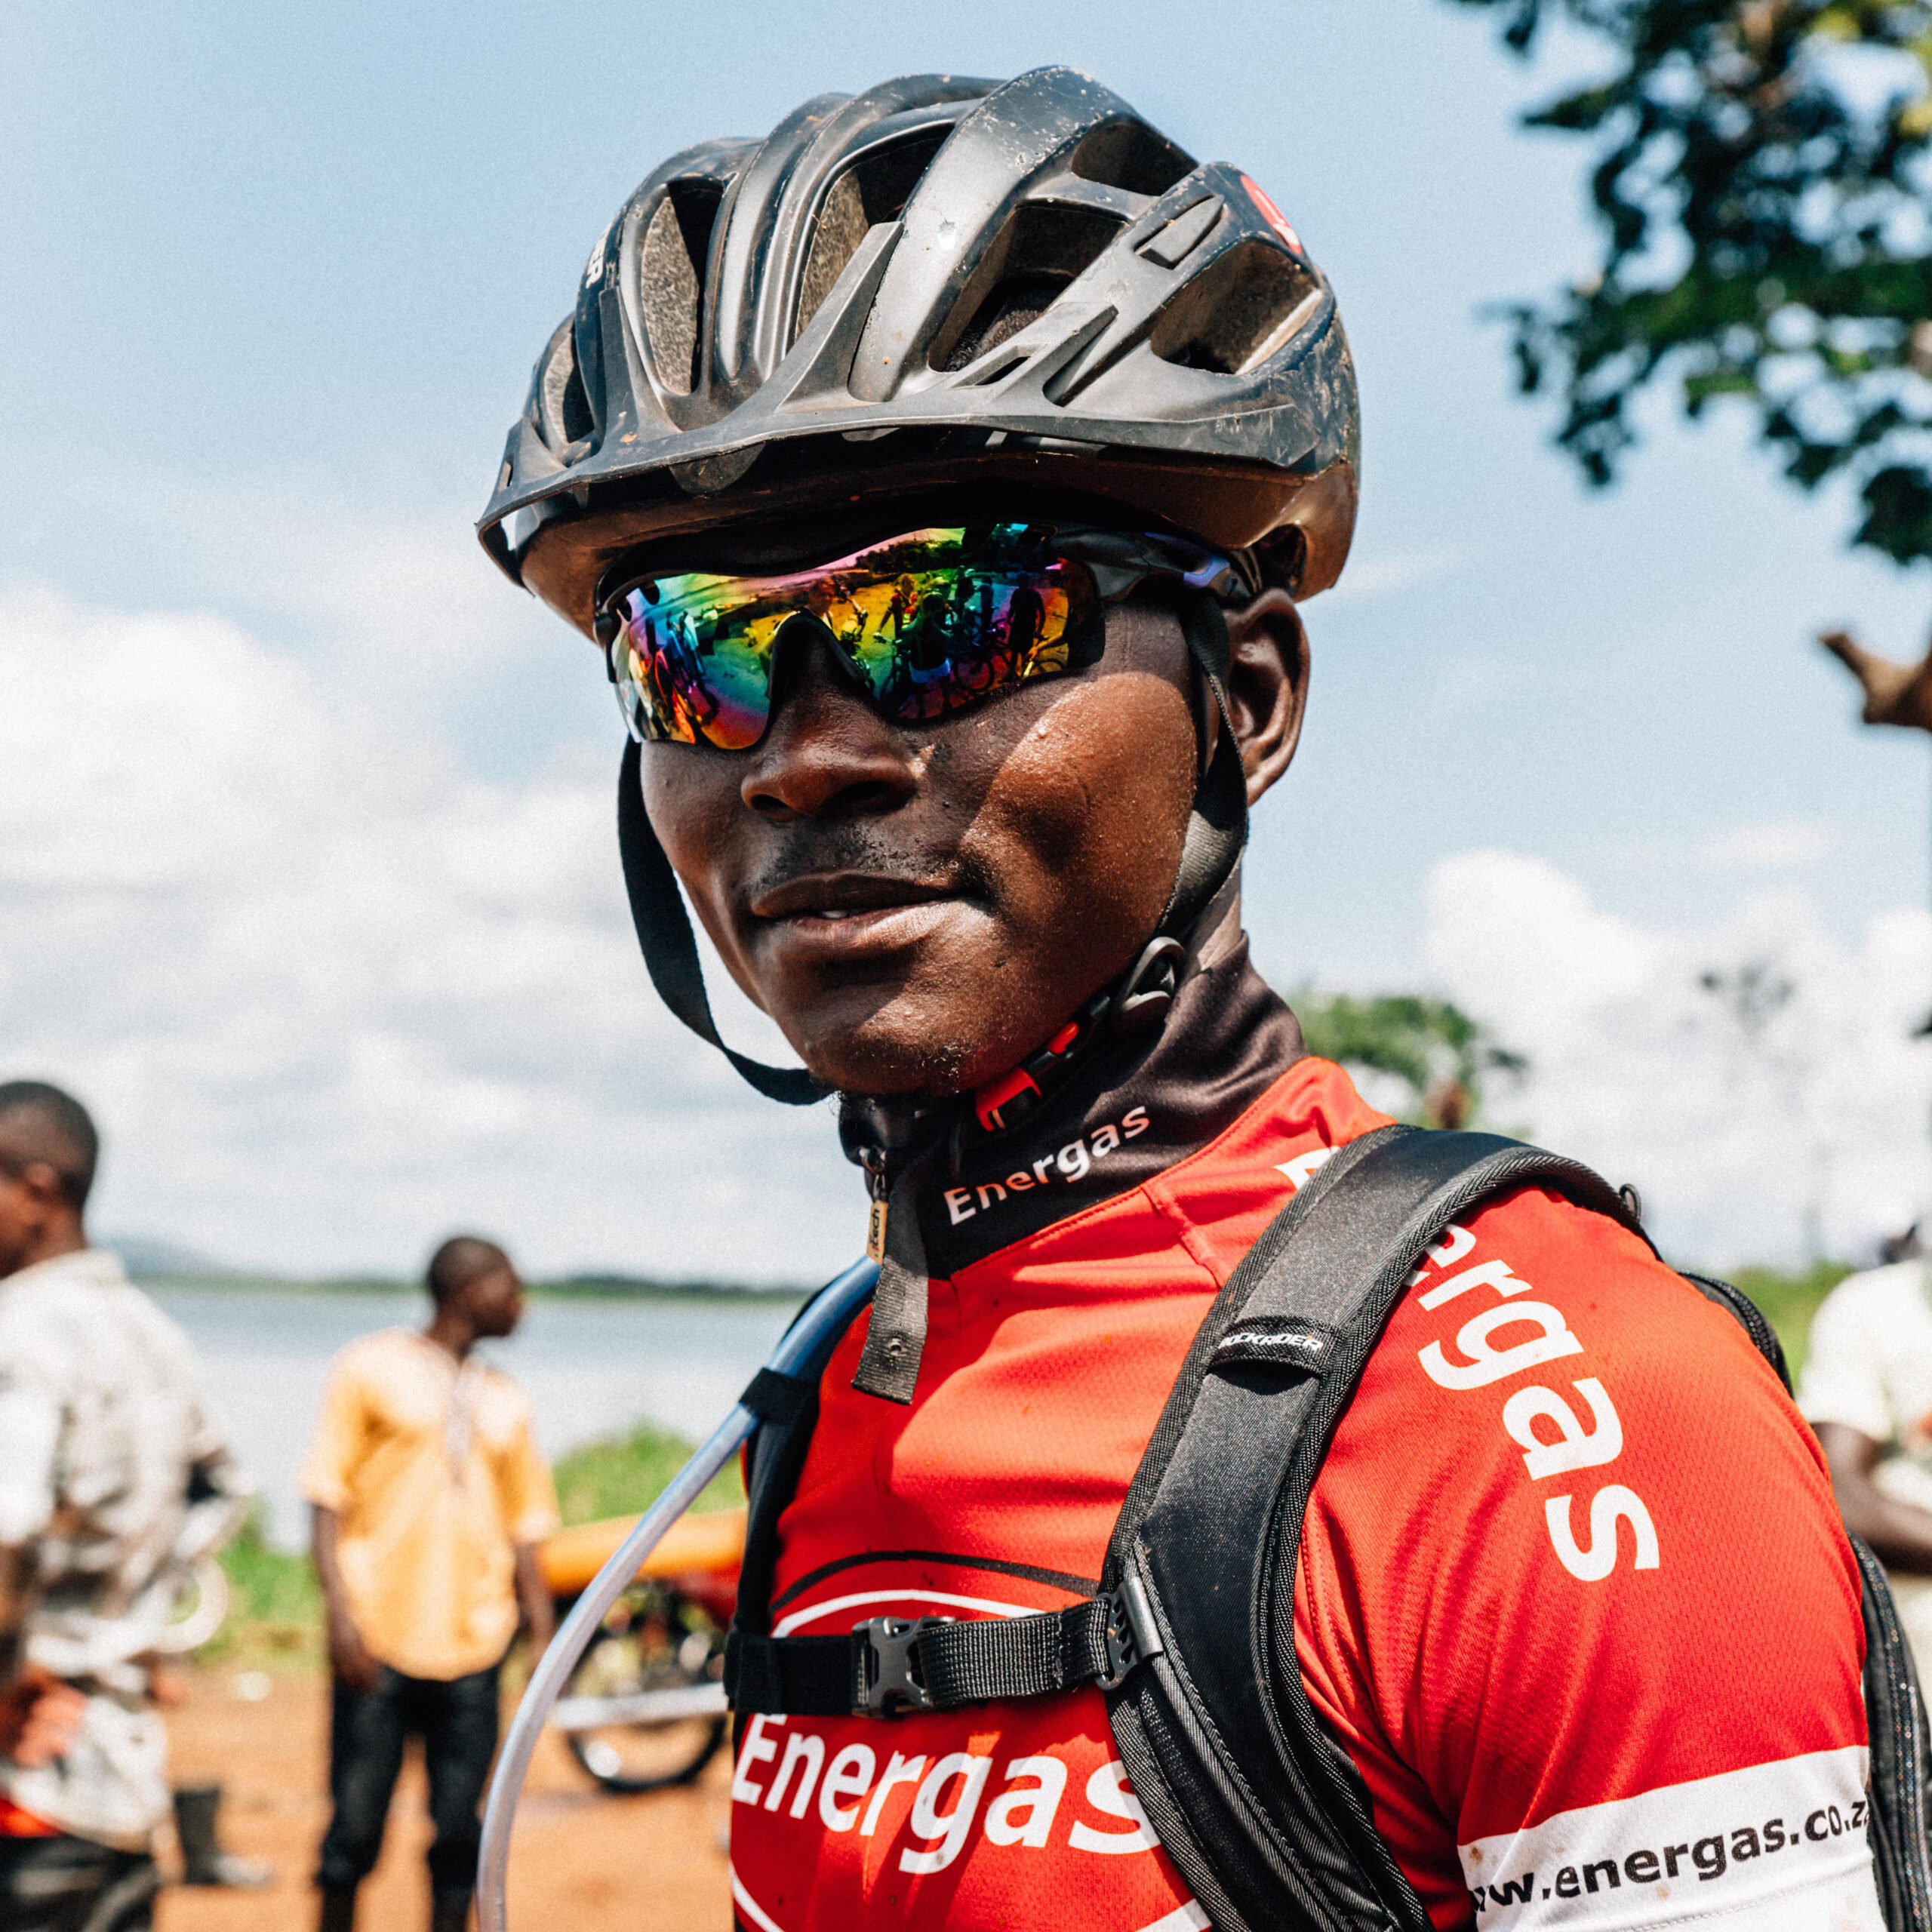 Red-Dirt-Uganda-Africa-Cycling-Adventure-Staff-Francis